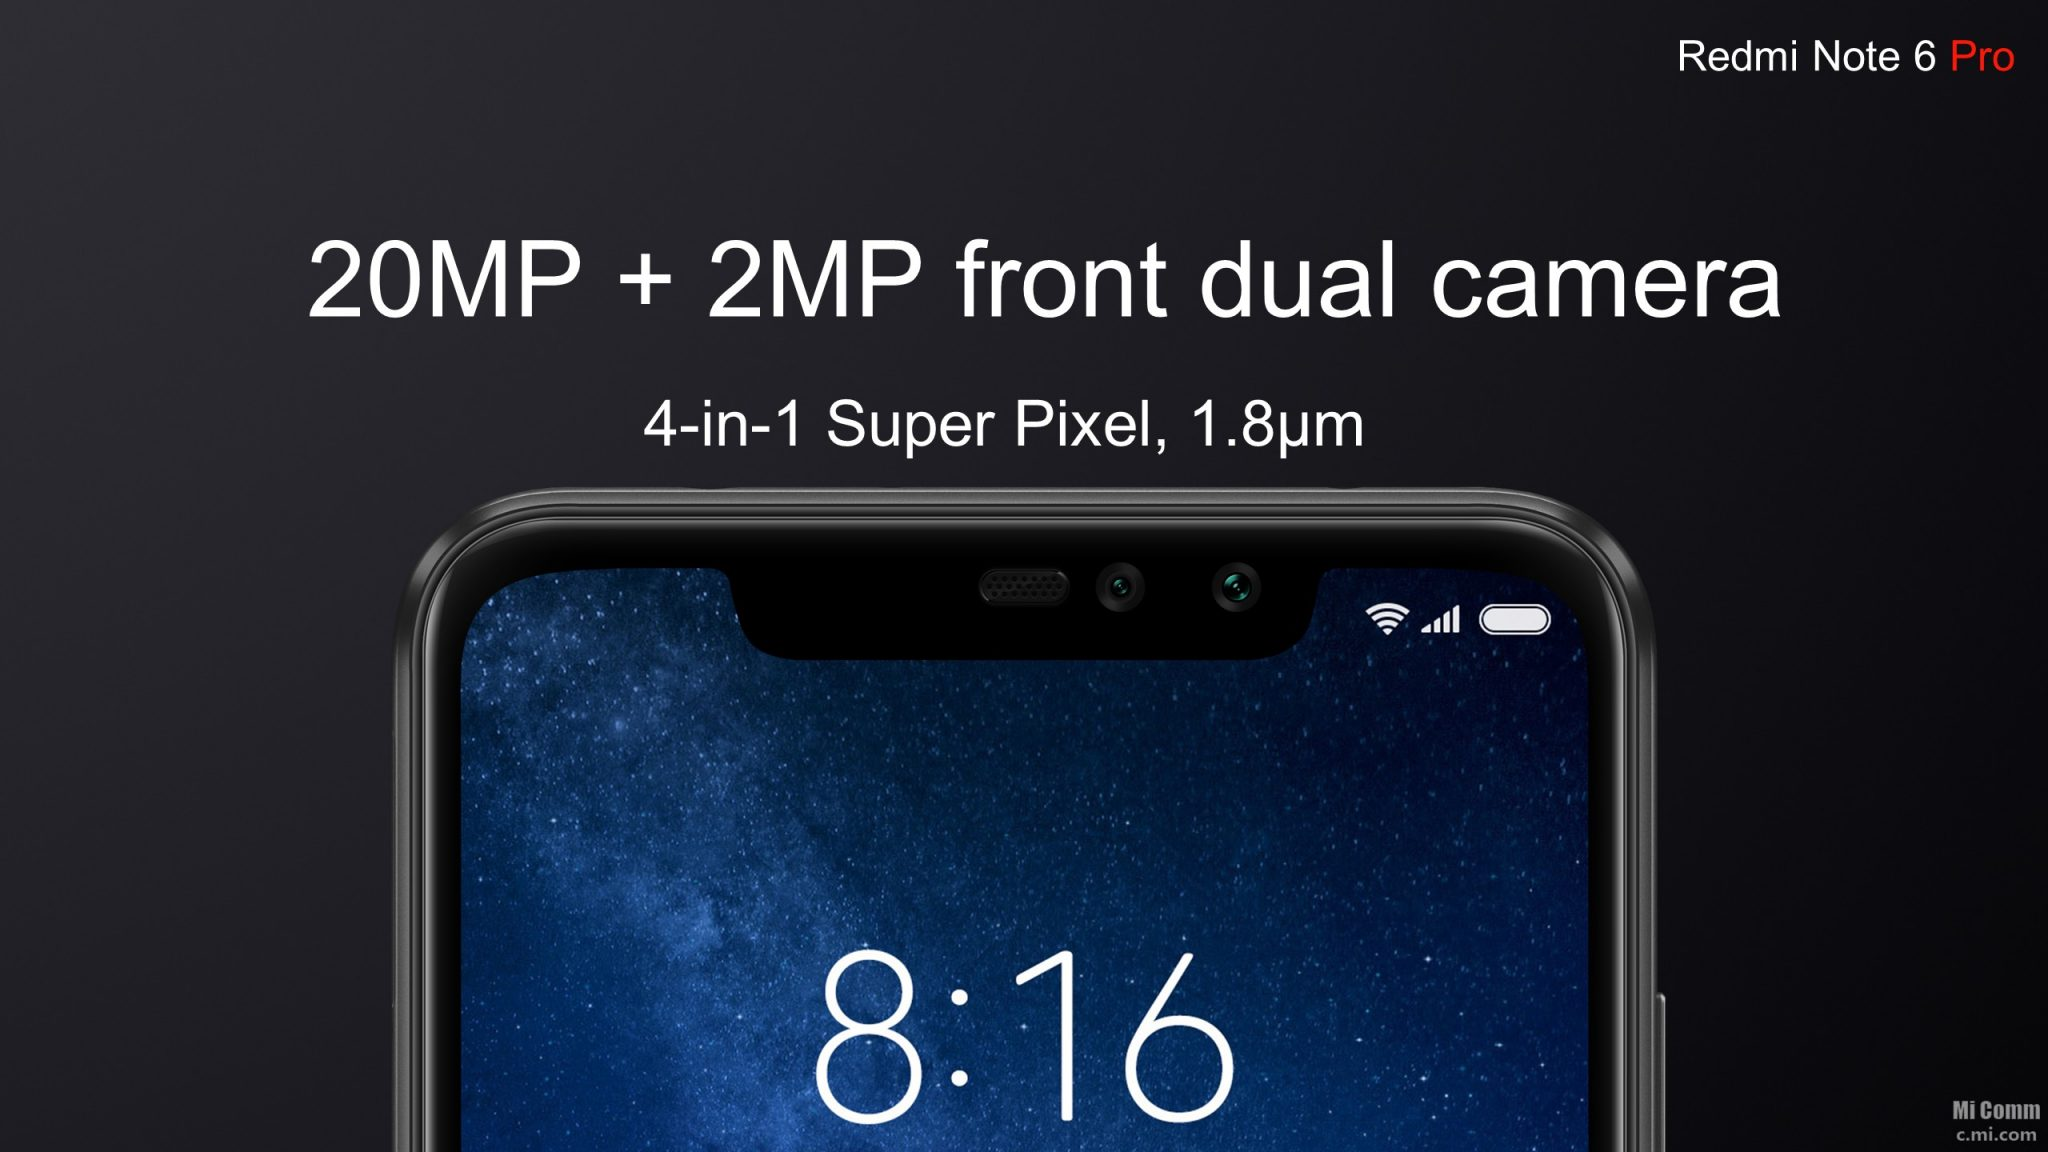 Xiaomi Redmi Note 6 Pro quietly announced in Thailand 6